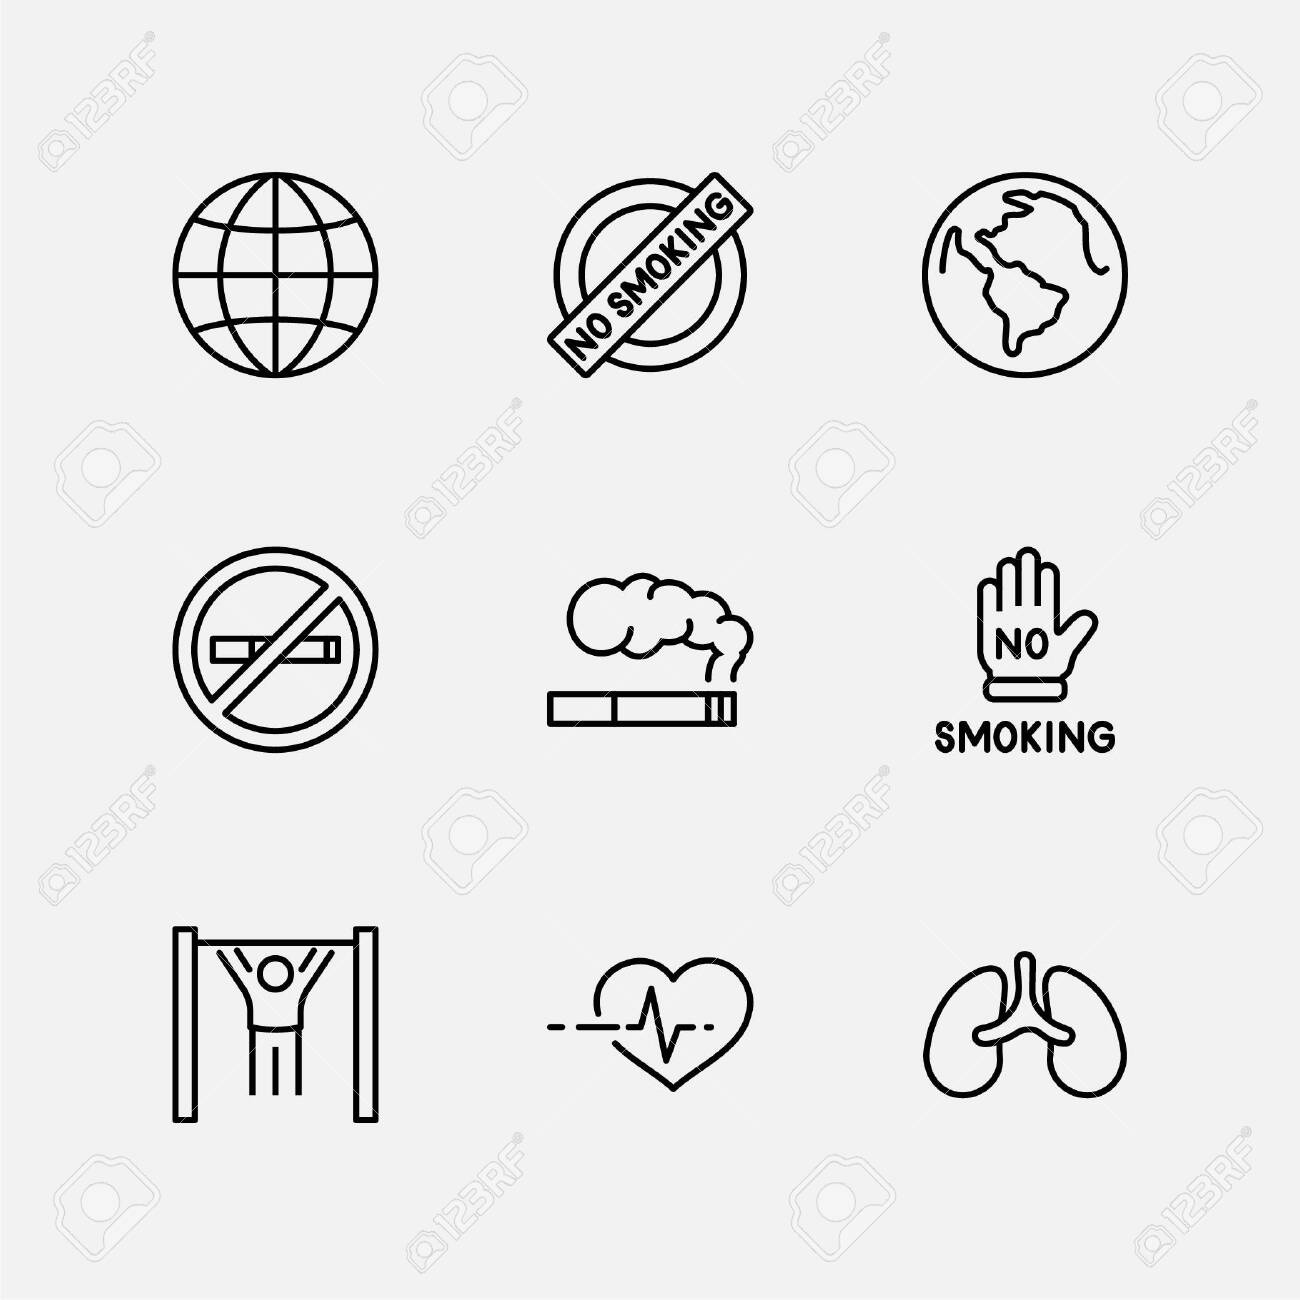 International No Tobacco Day Set Line Vector Icons. Contains such Icons as Lungs, Cigars, Cigarettes, Smoking, Globe, smoking Cessation and more. Editable Stroke 32x32 Pixels - 138793914